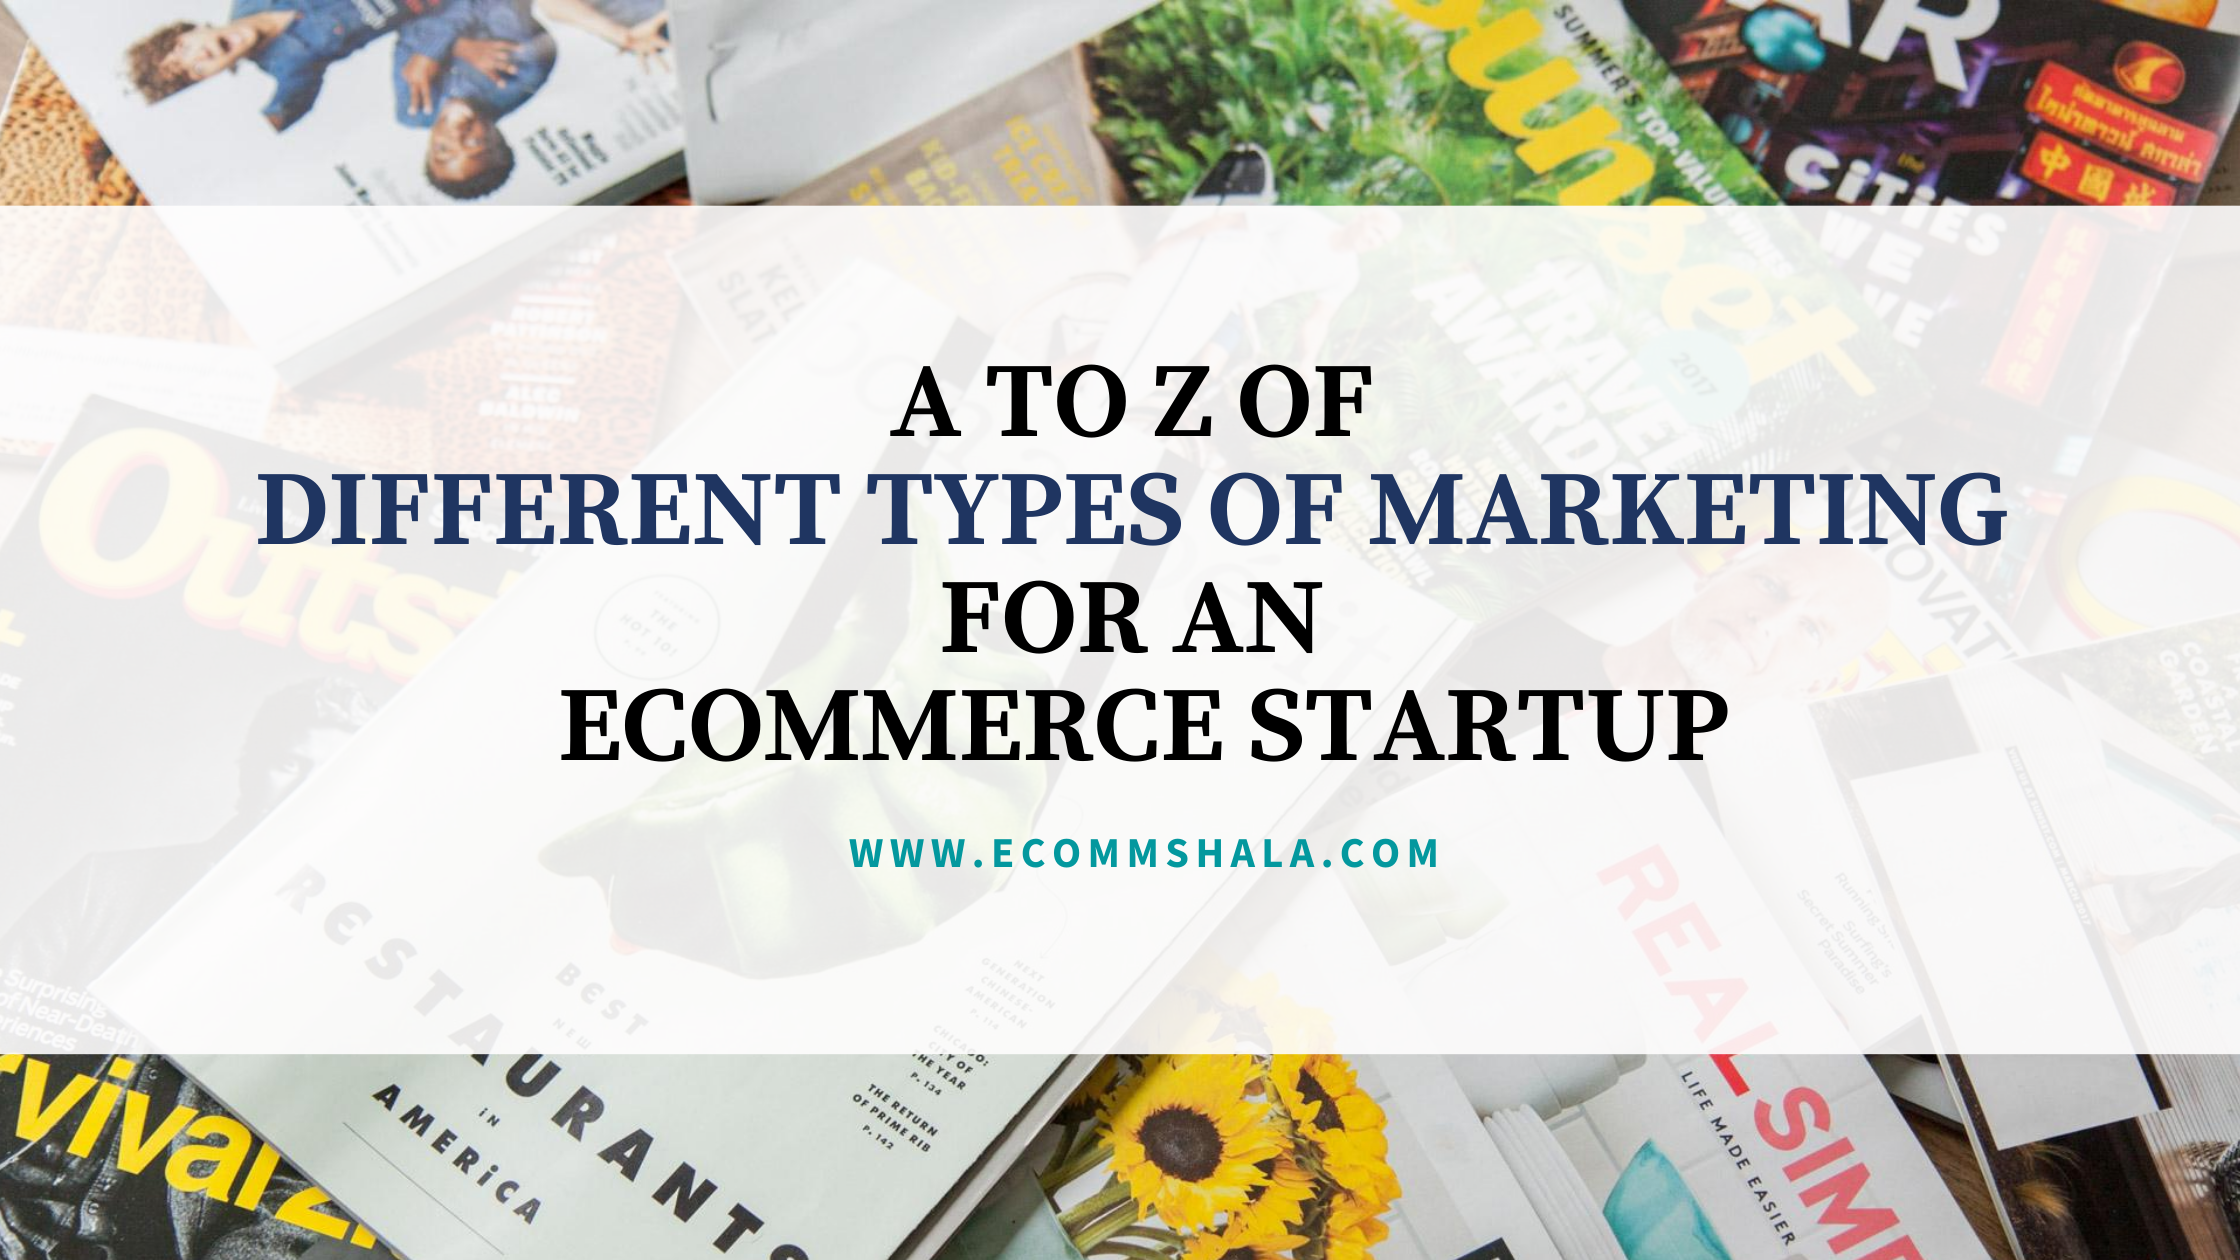 A to Z of Different types of Marketing for an Ecommerce Startup